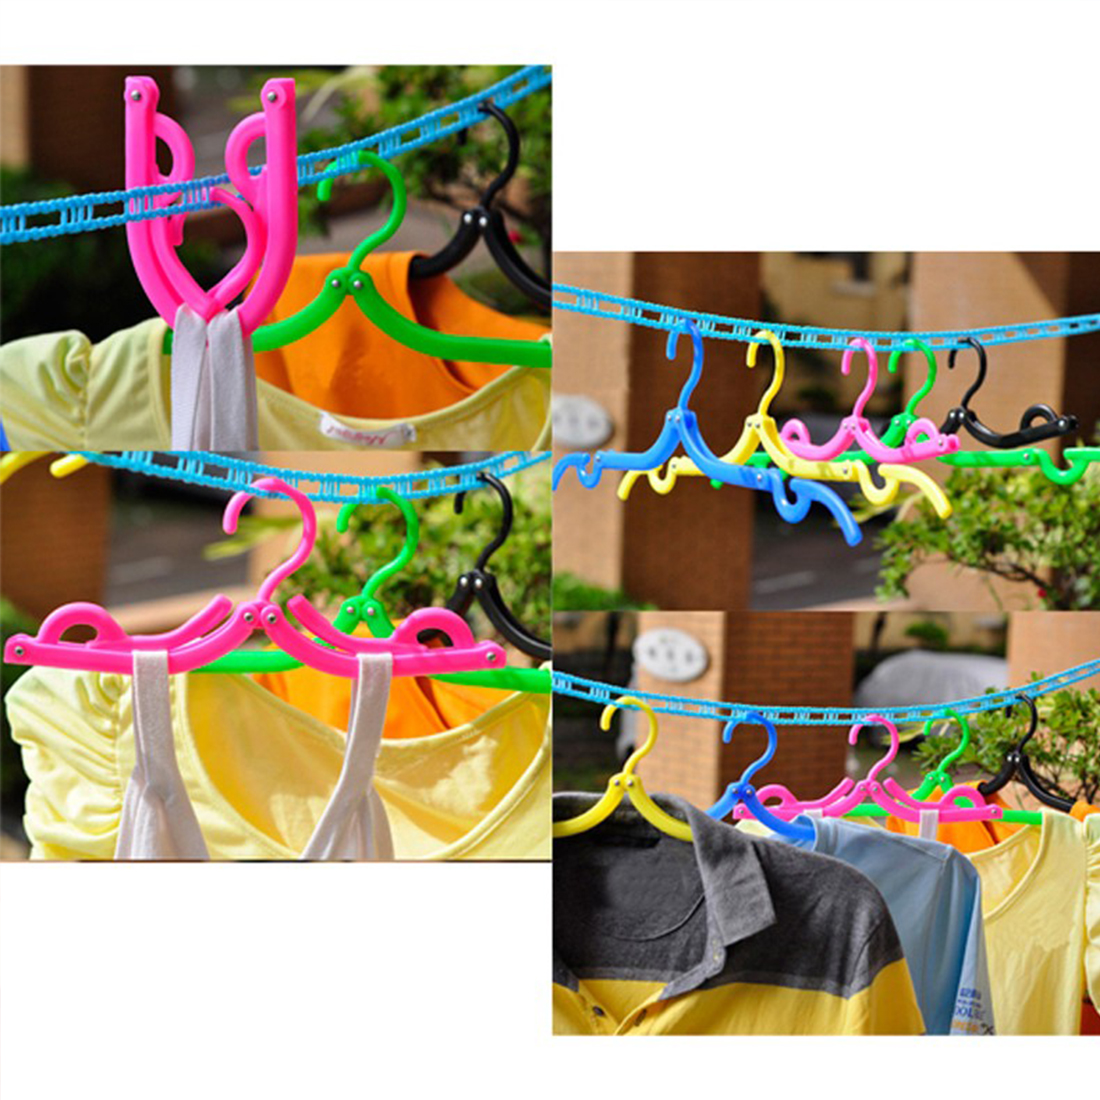 Practical Plastic Hook Foldable Hanger Clothes Pegs Laundry Product Travel Space Saving Wardrobe Cloth Hanger Random Color